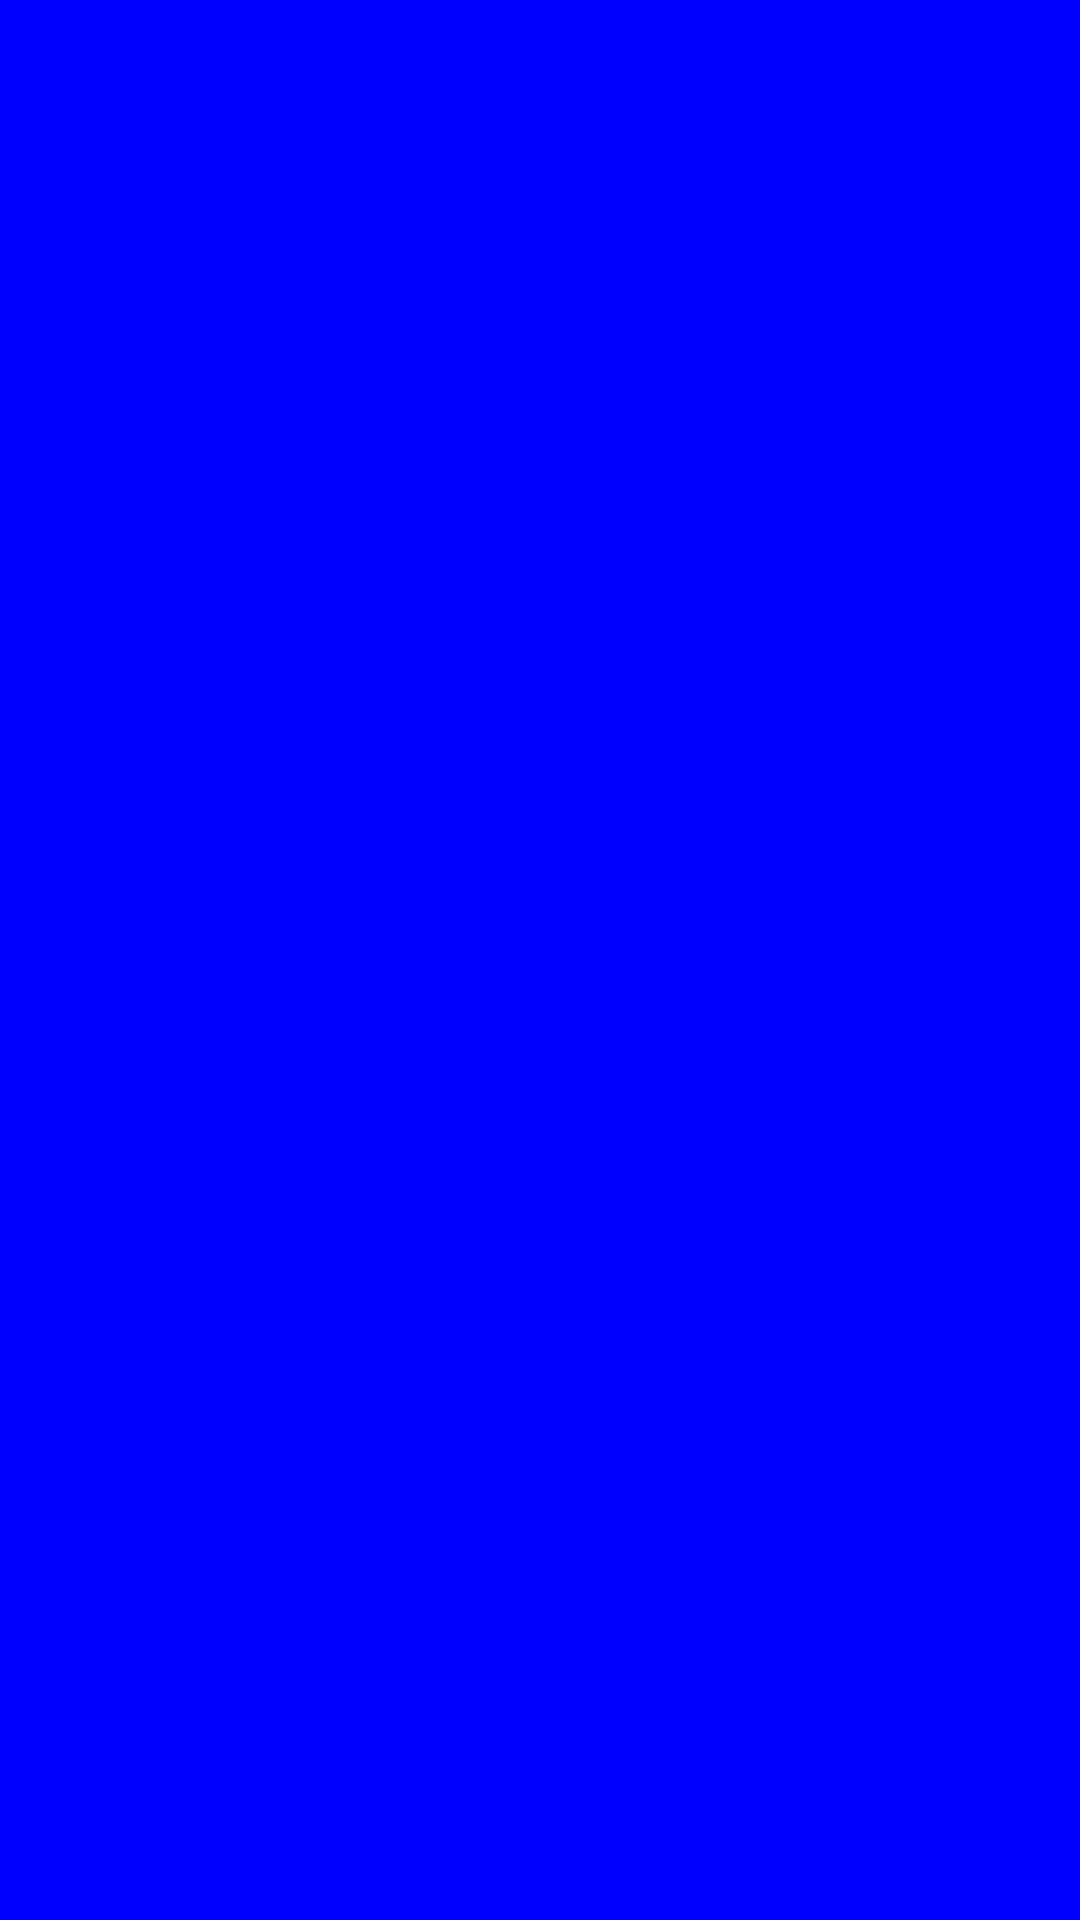 1080x1920 Blue Solid Color Background